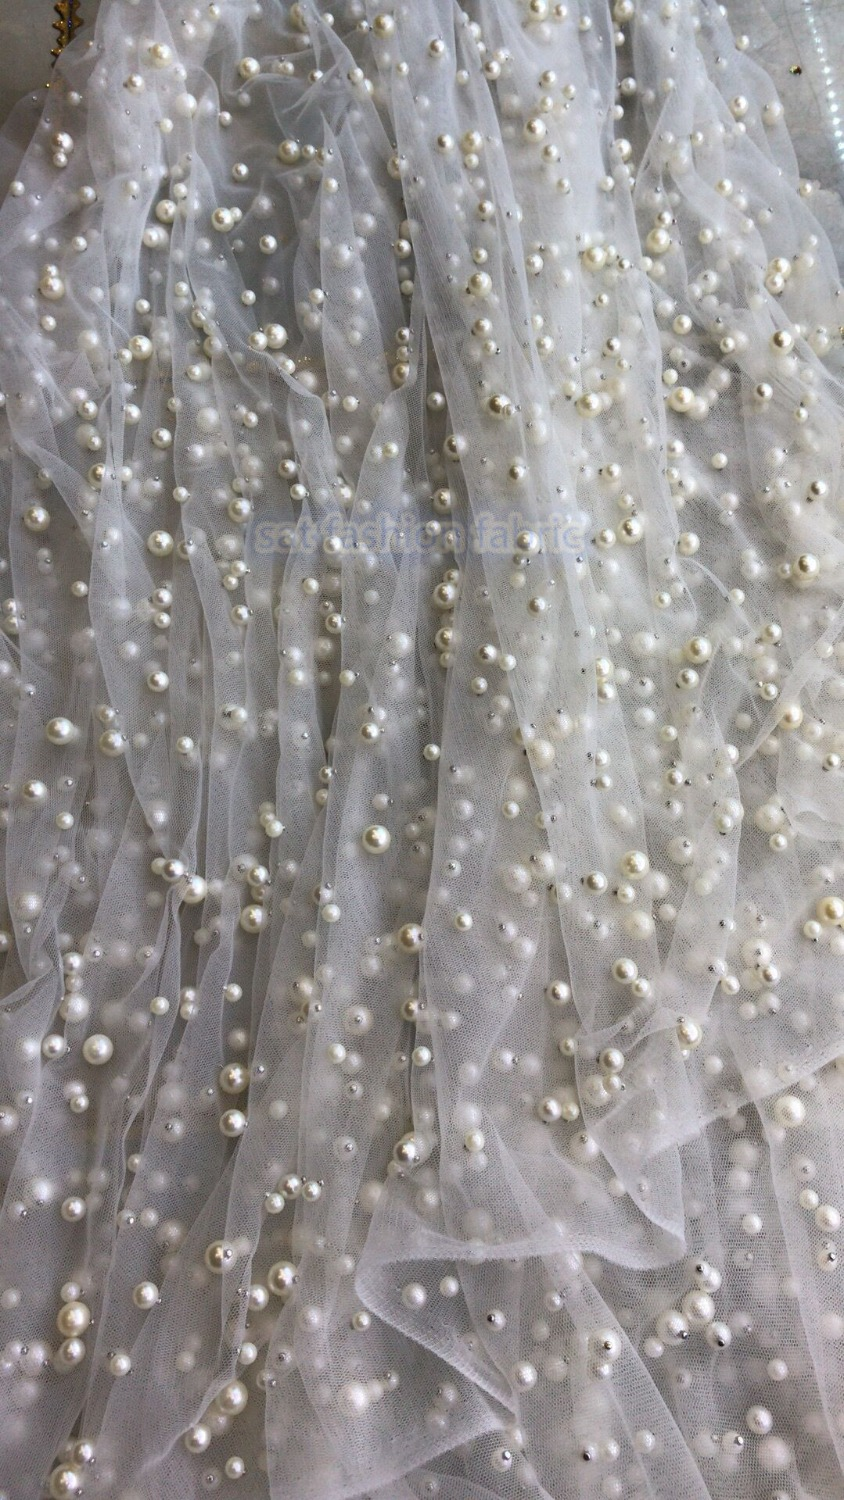 good looking sat 42061 african Indian lace fabric with full beads material for fashion dress-in Lace from Home & Garden    1